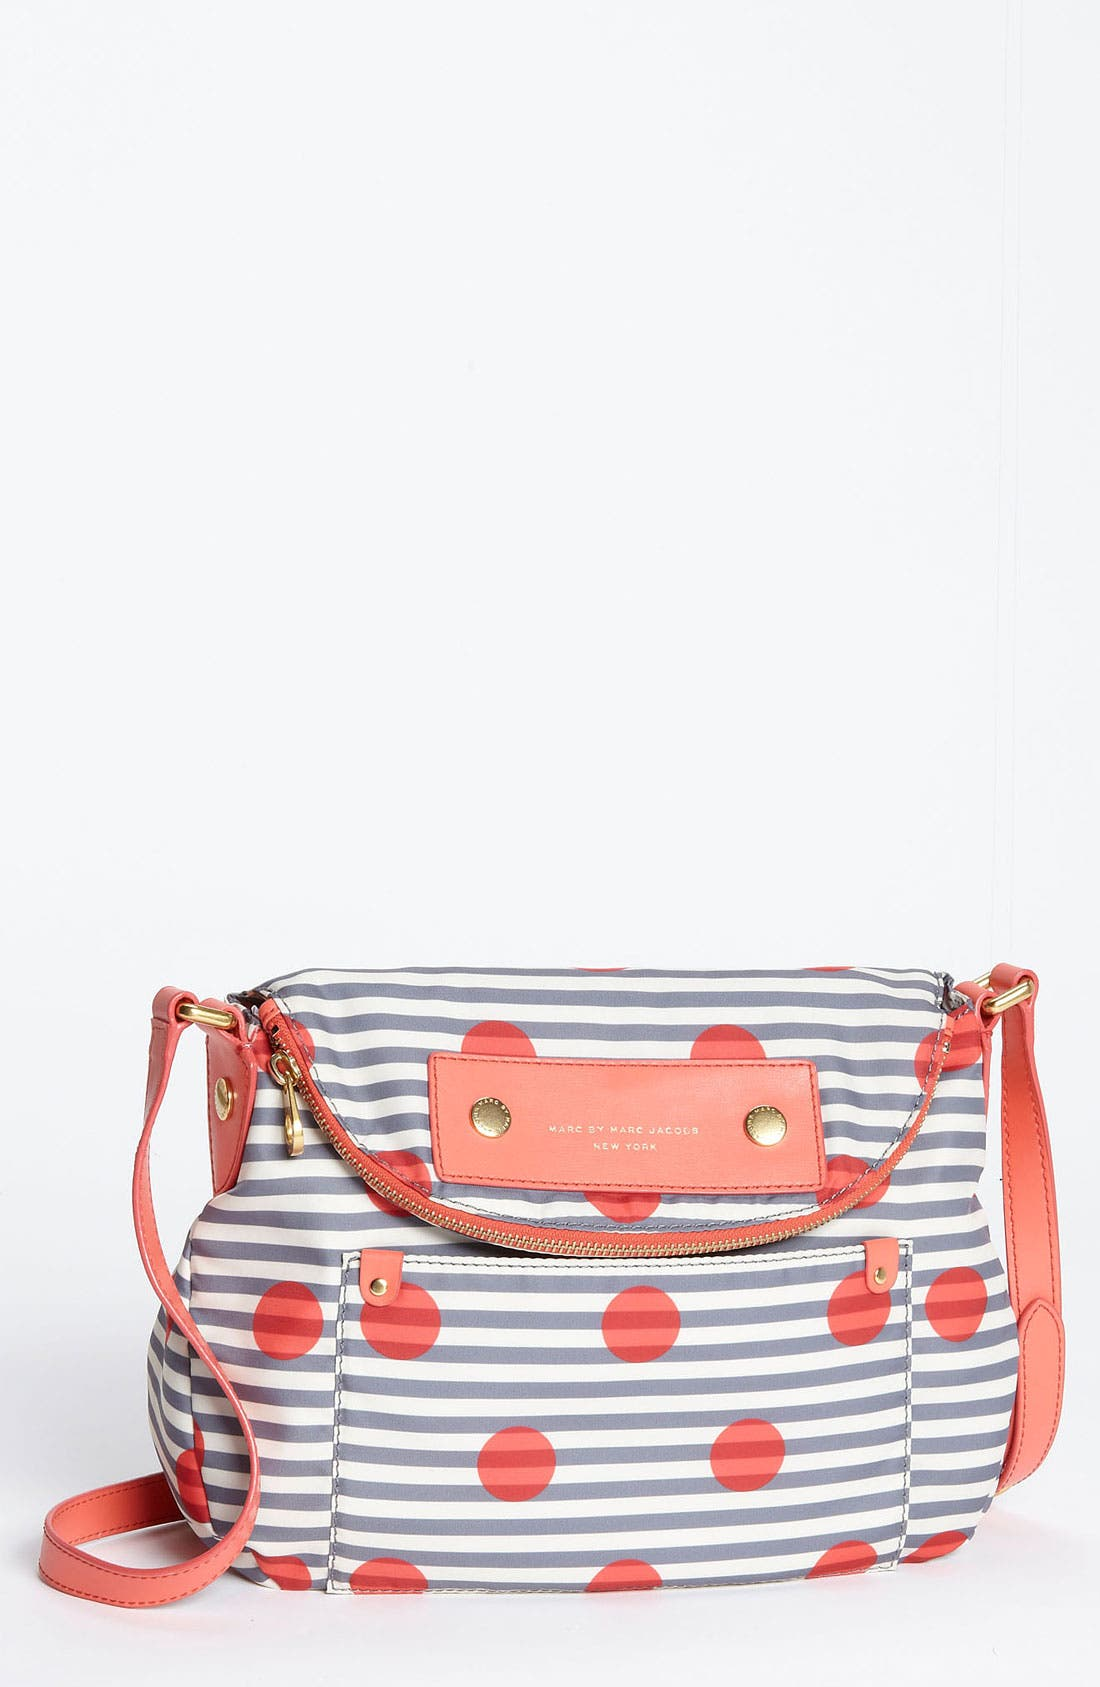 Main Image - MARC BY MARC JACOBS 'Preppy Nylon - Natasha' Print Crossbody Bag